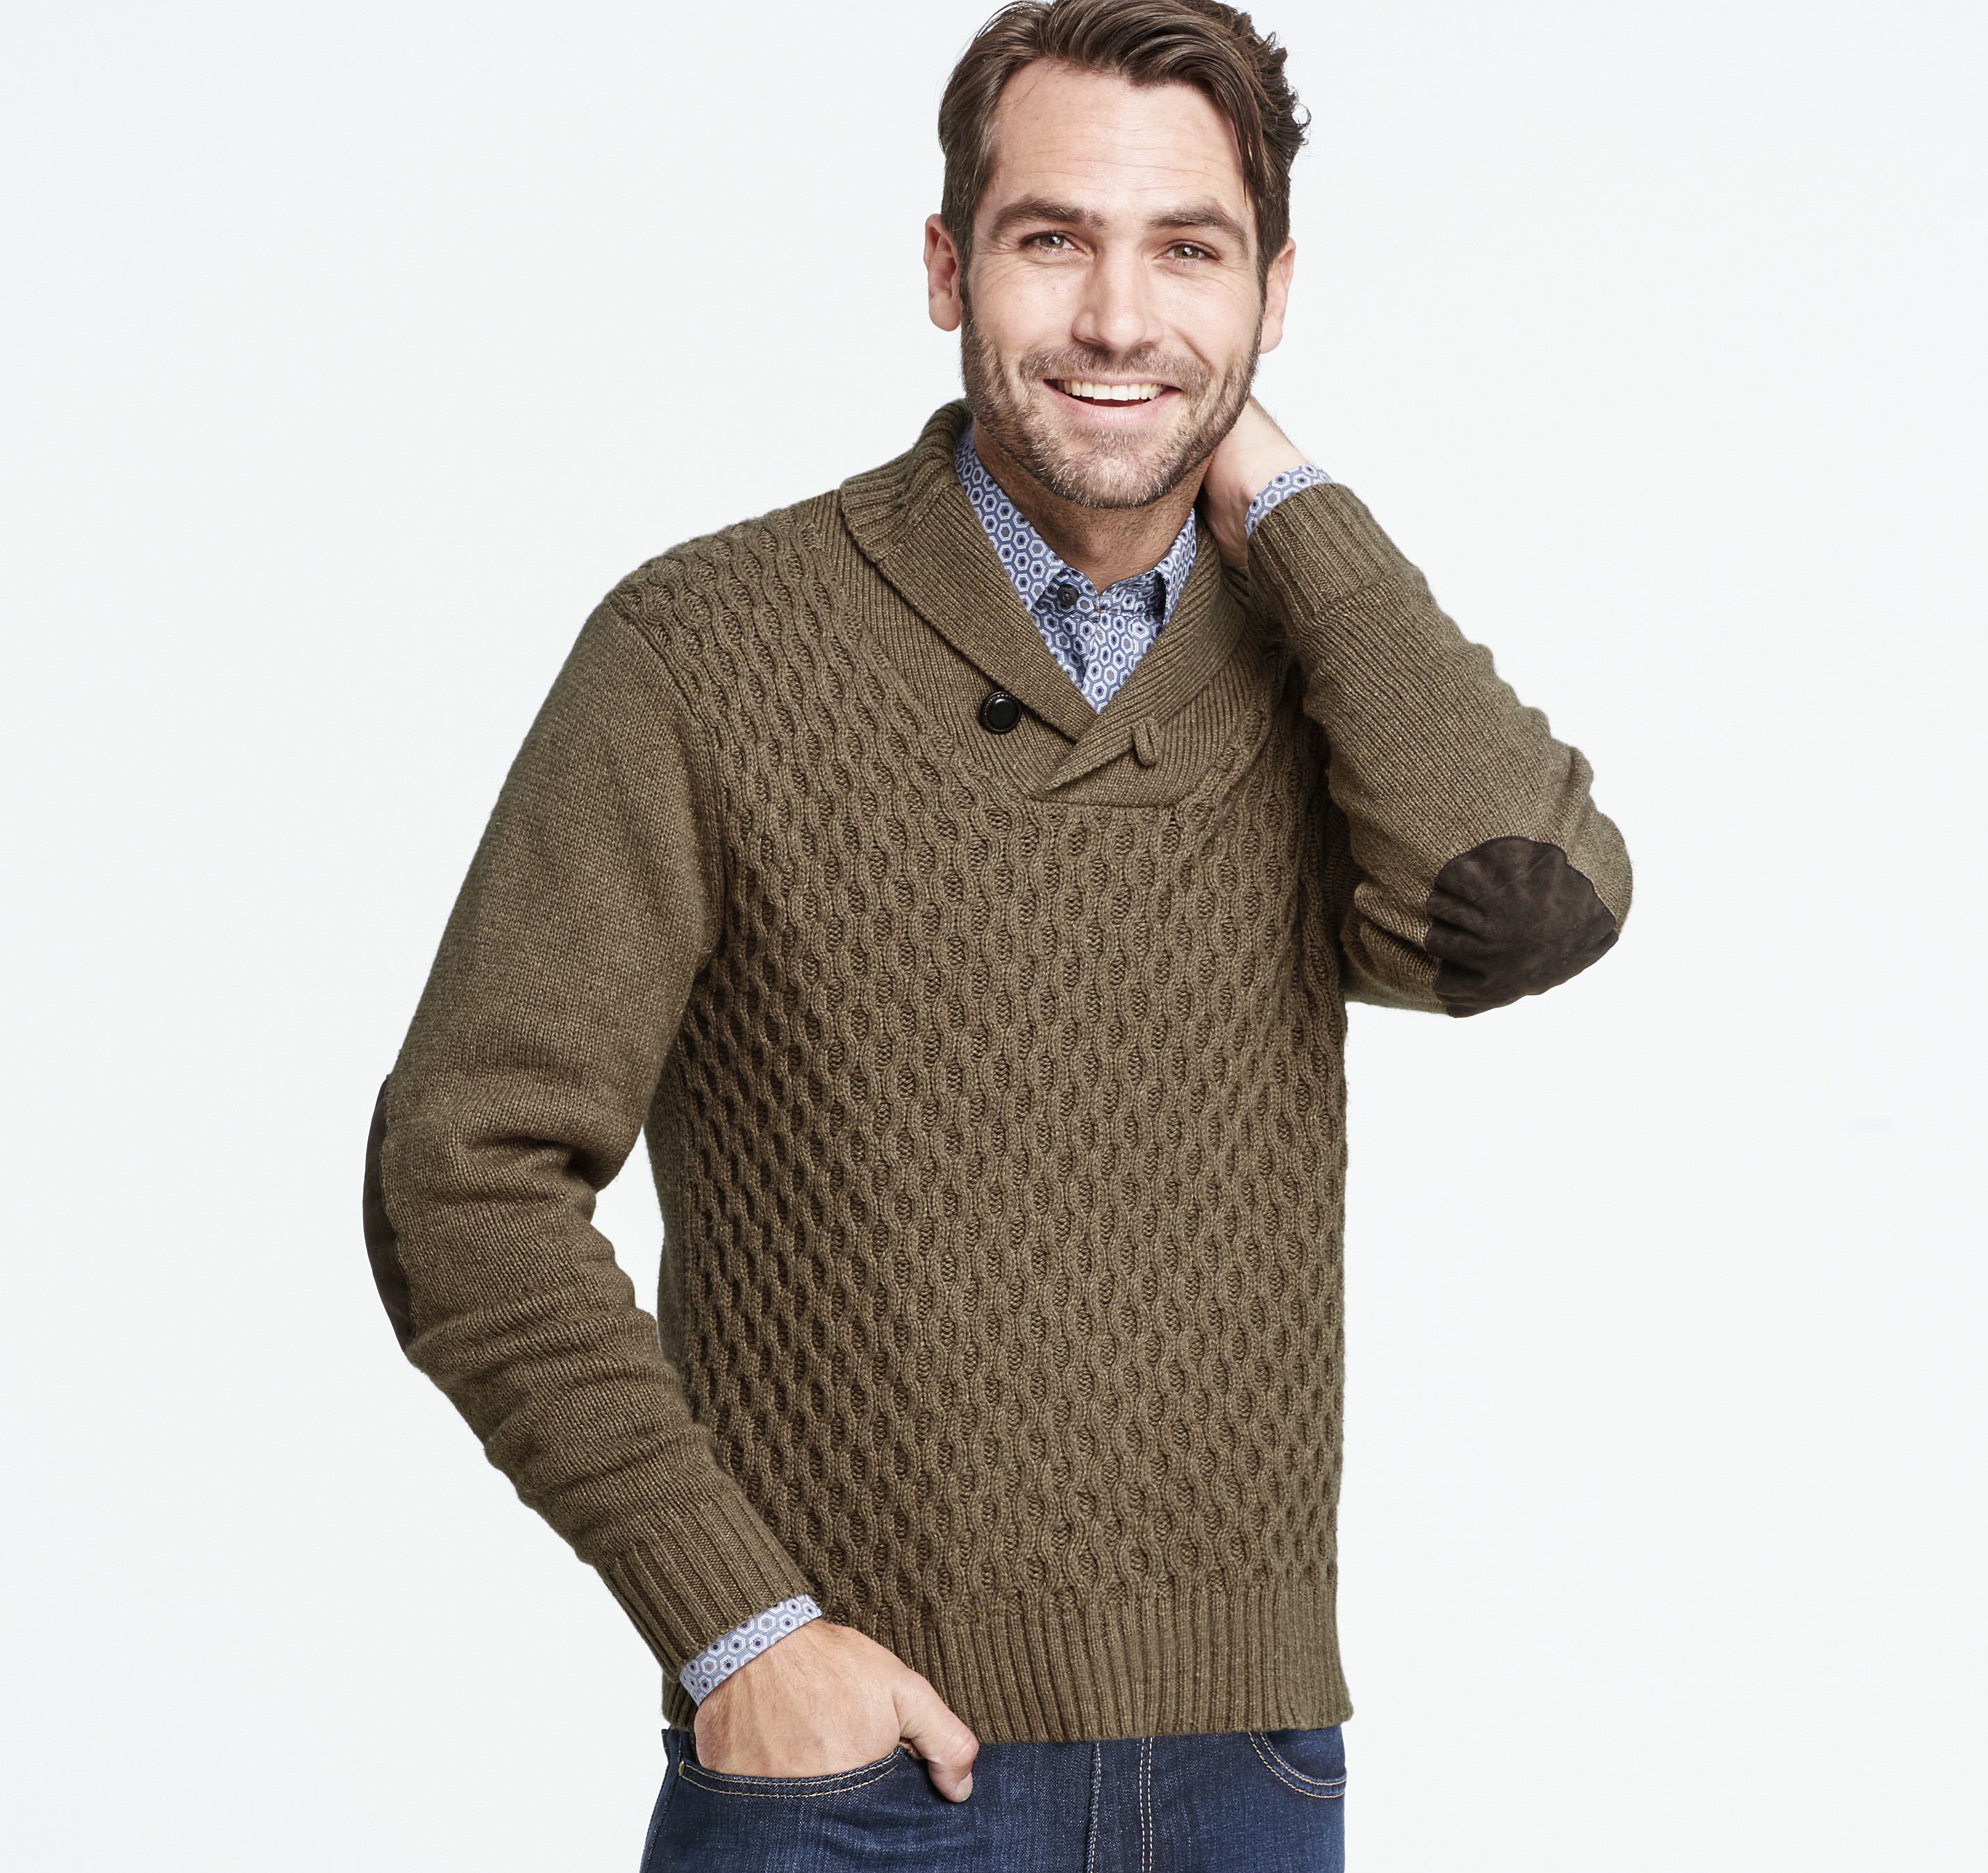 595550c94 Textured Shawl-Collar Sweater